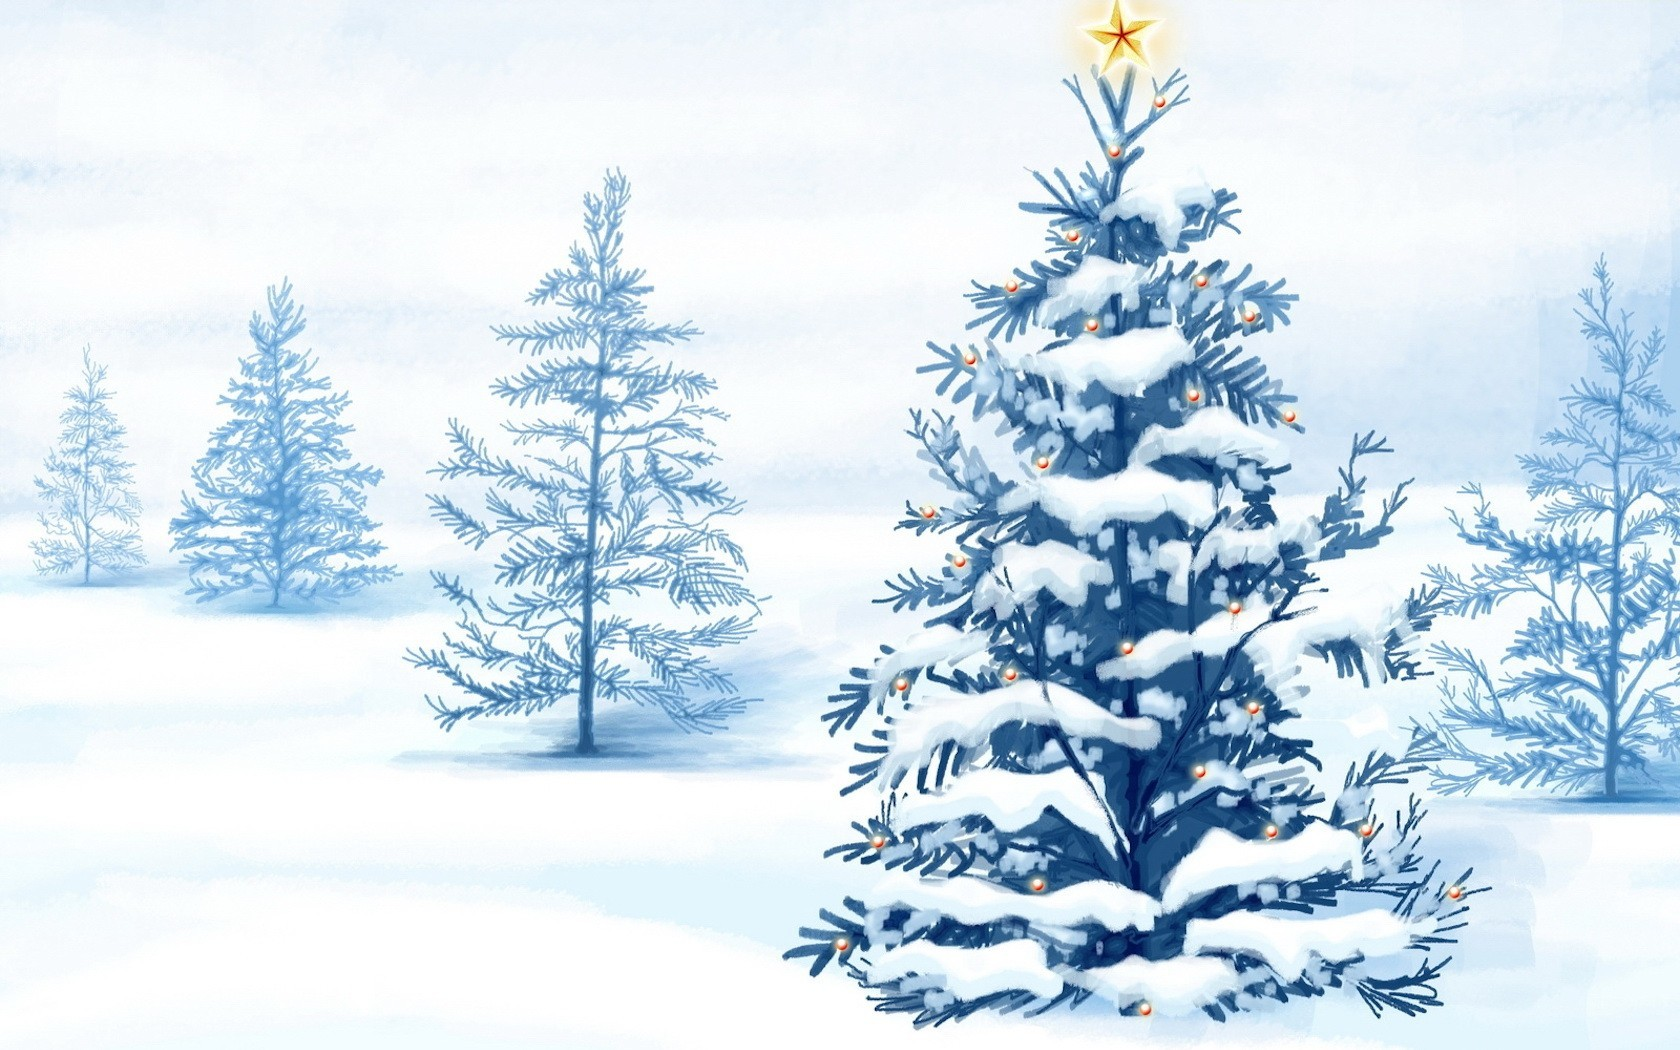 Christmas trees snow landscapes HD Wallpaper